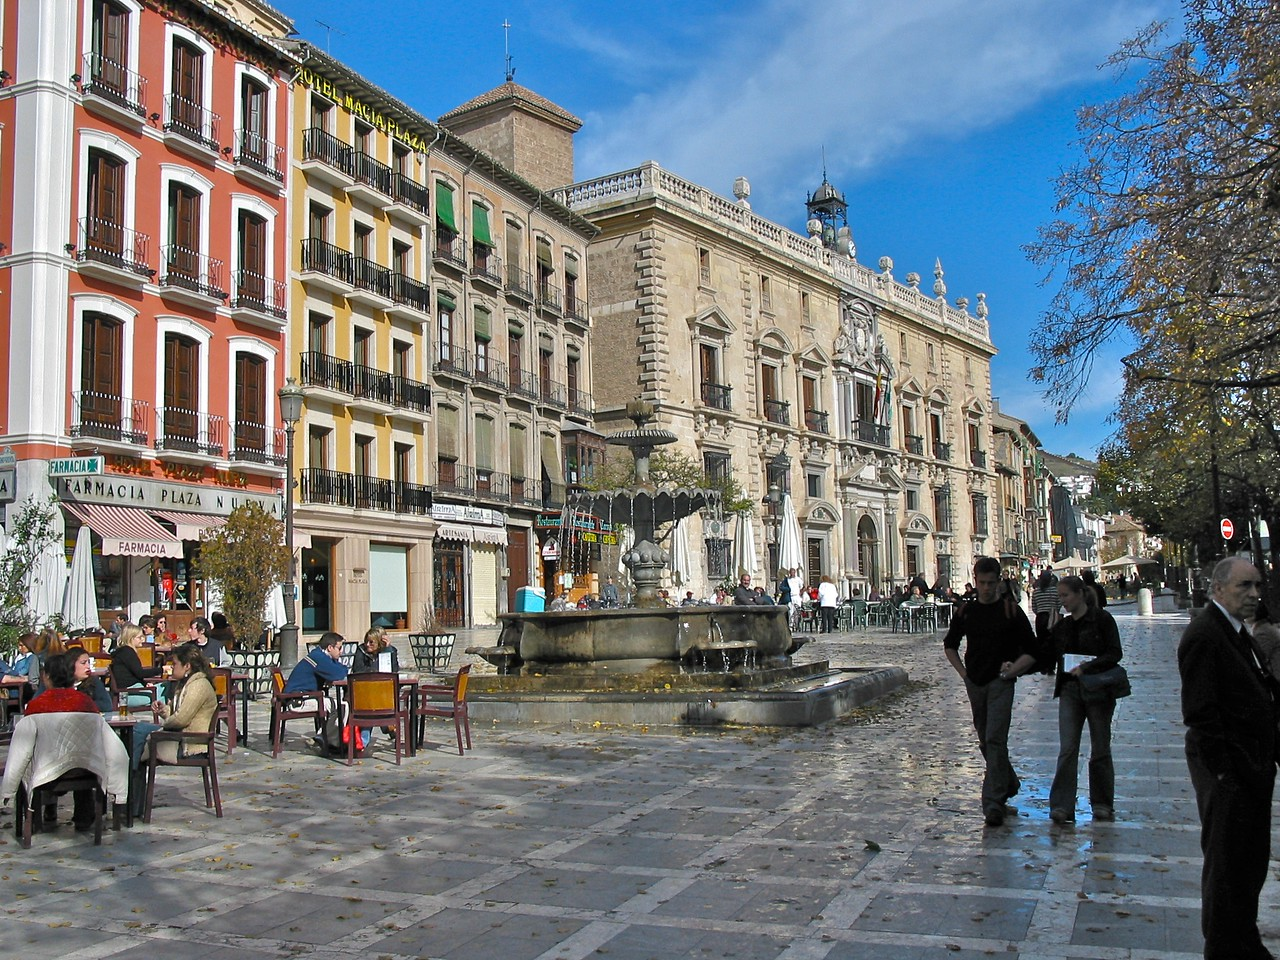 The city of Granada at an elevation of 2500 ft above sea level is only one hour from the Mediterrean sea.